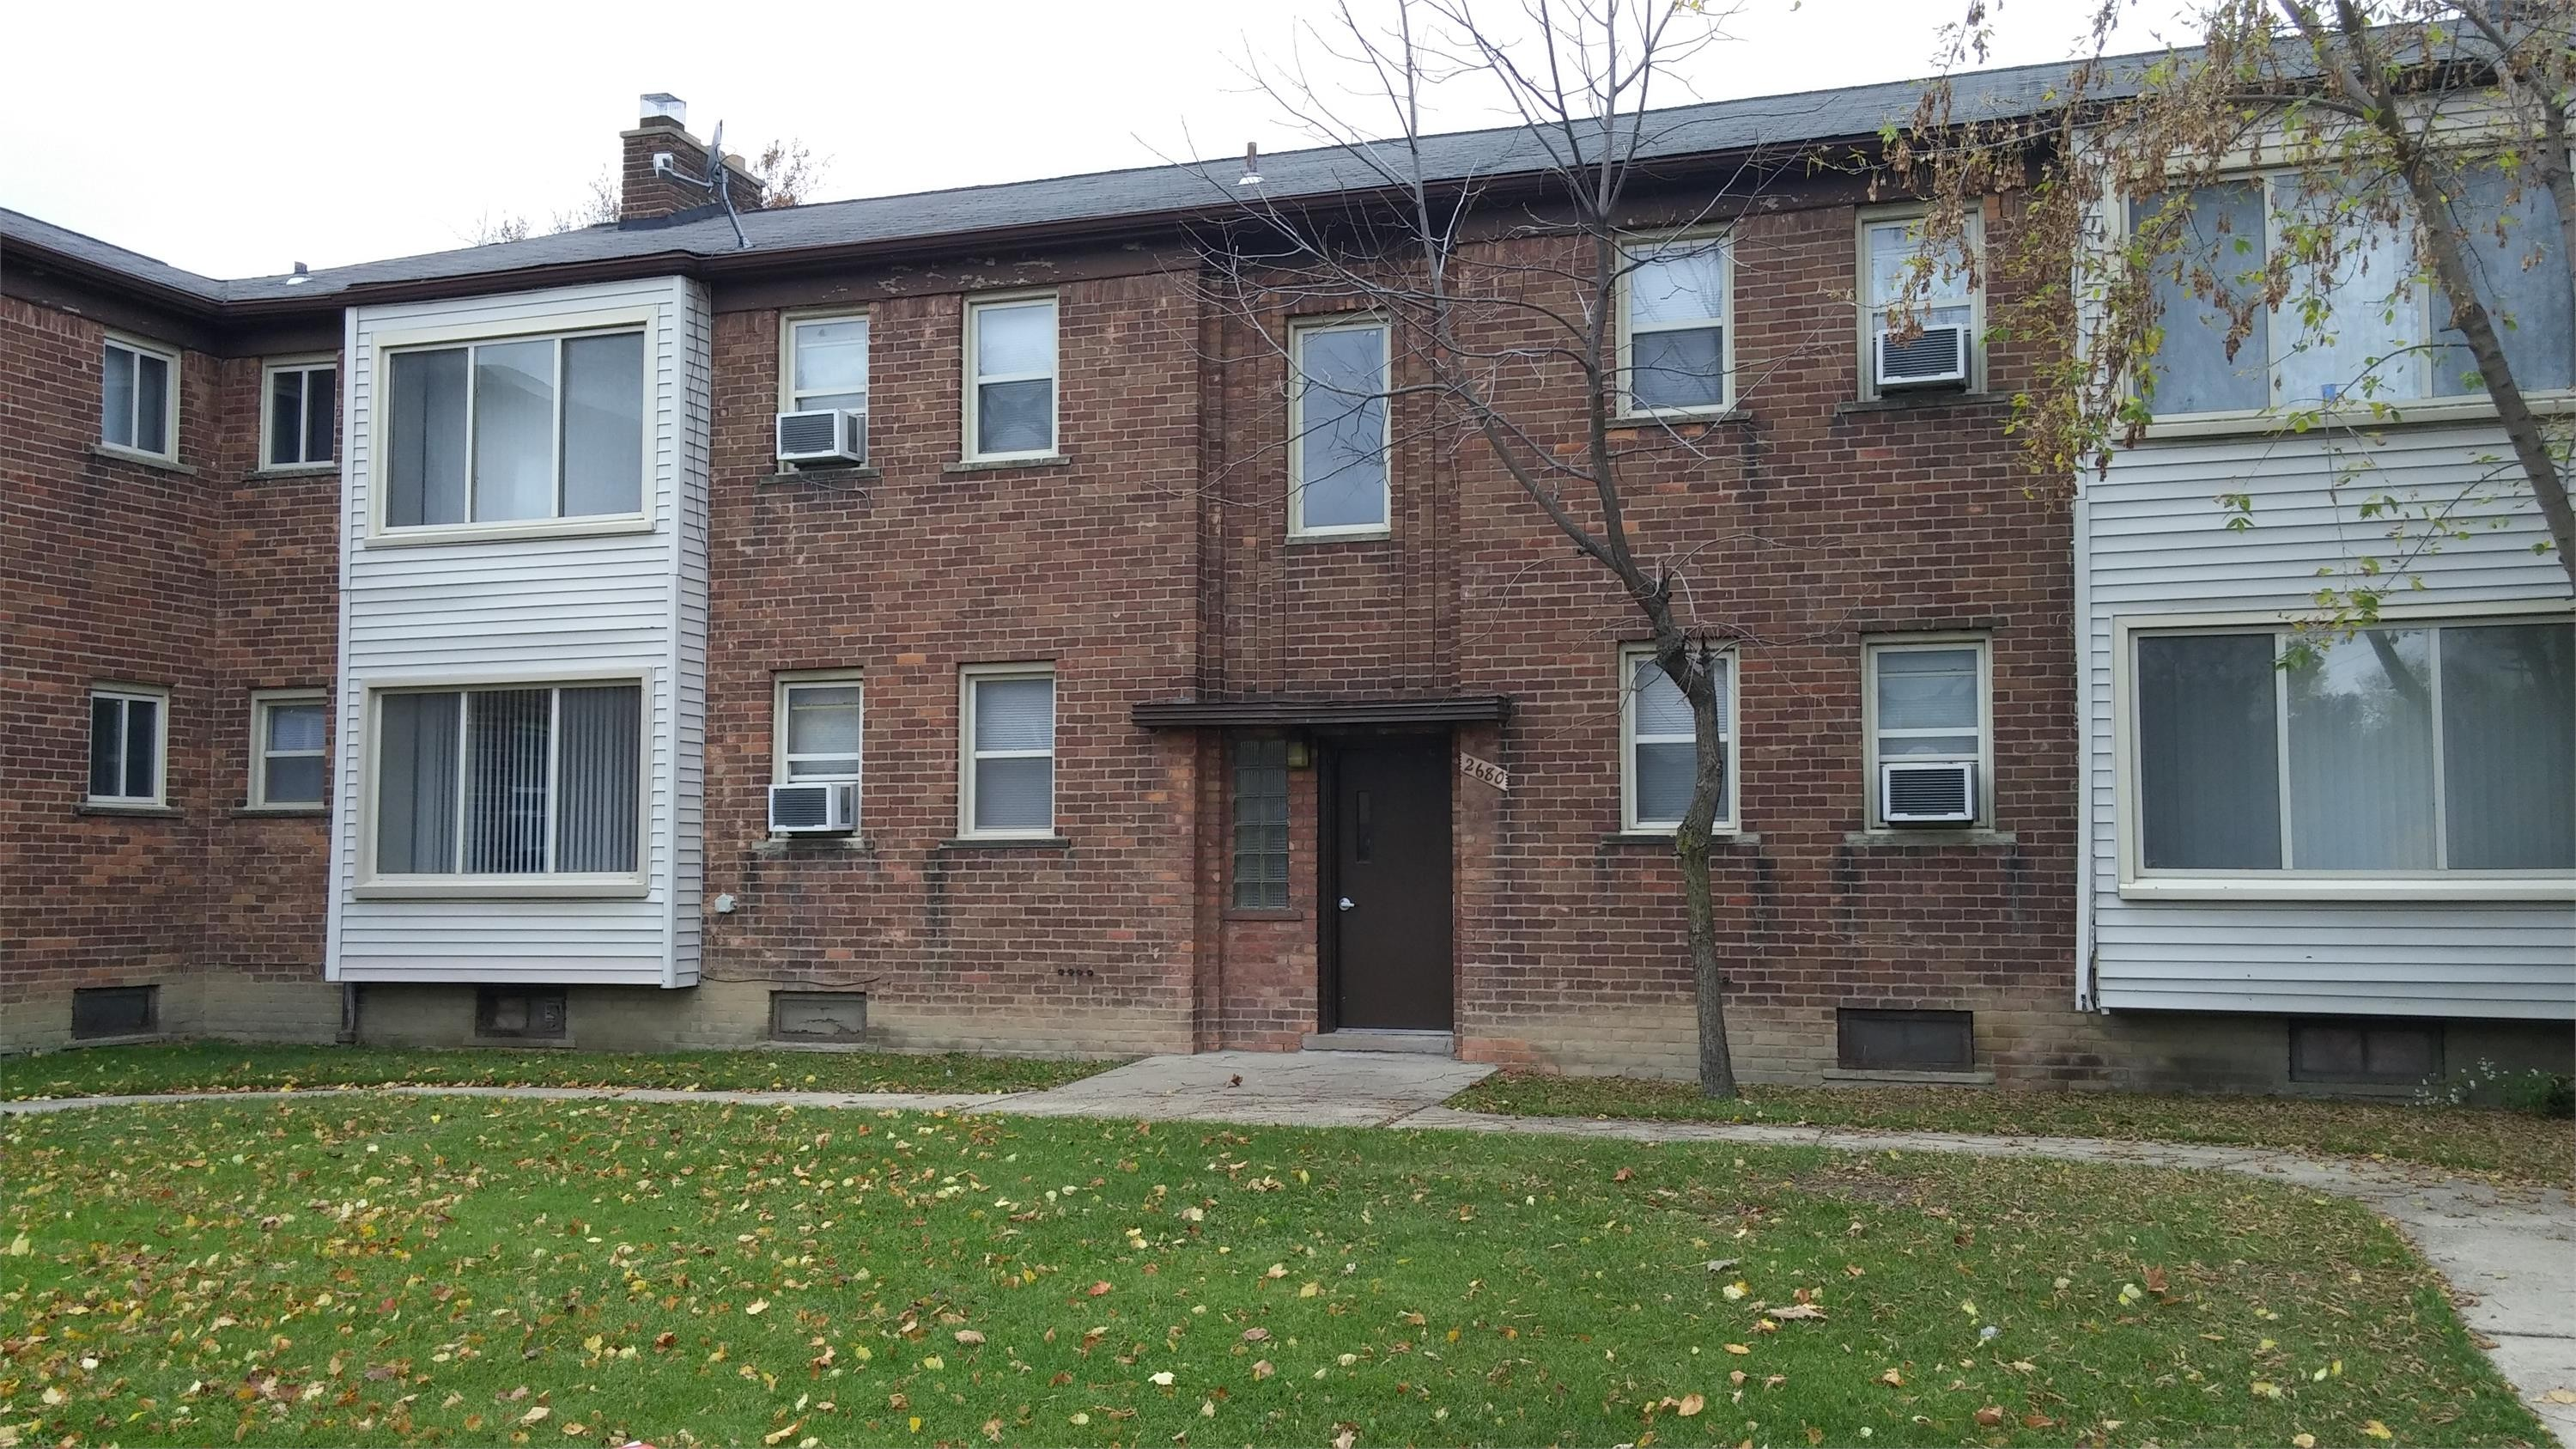 2680 Ewald Cir 2680ewaldc Detroit Mi 48238 2 Bedroom Apartment For Rent Padmapper